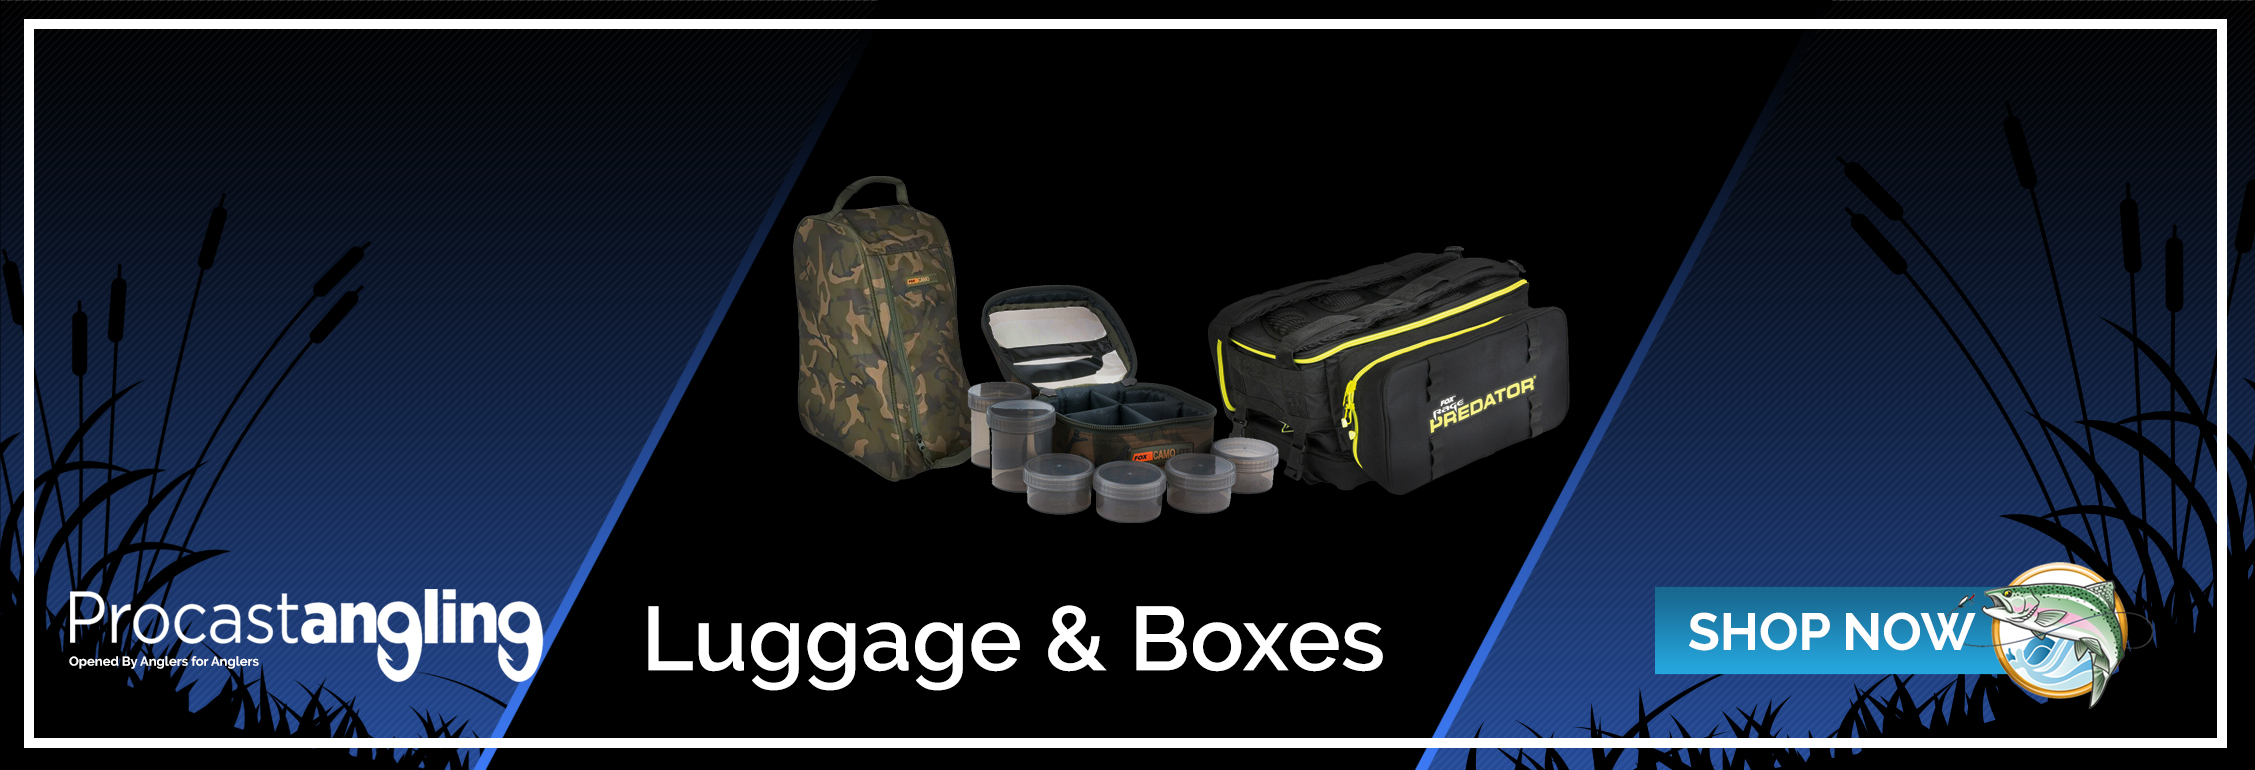 LUGGAGE & BOXES